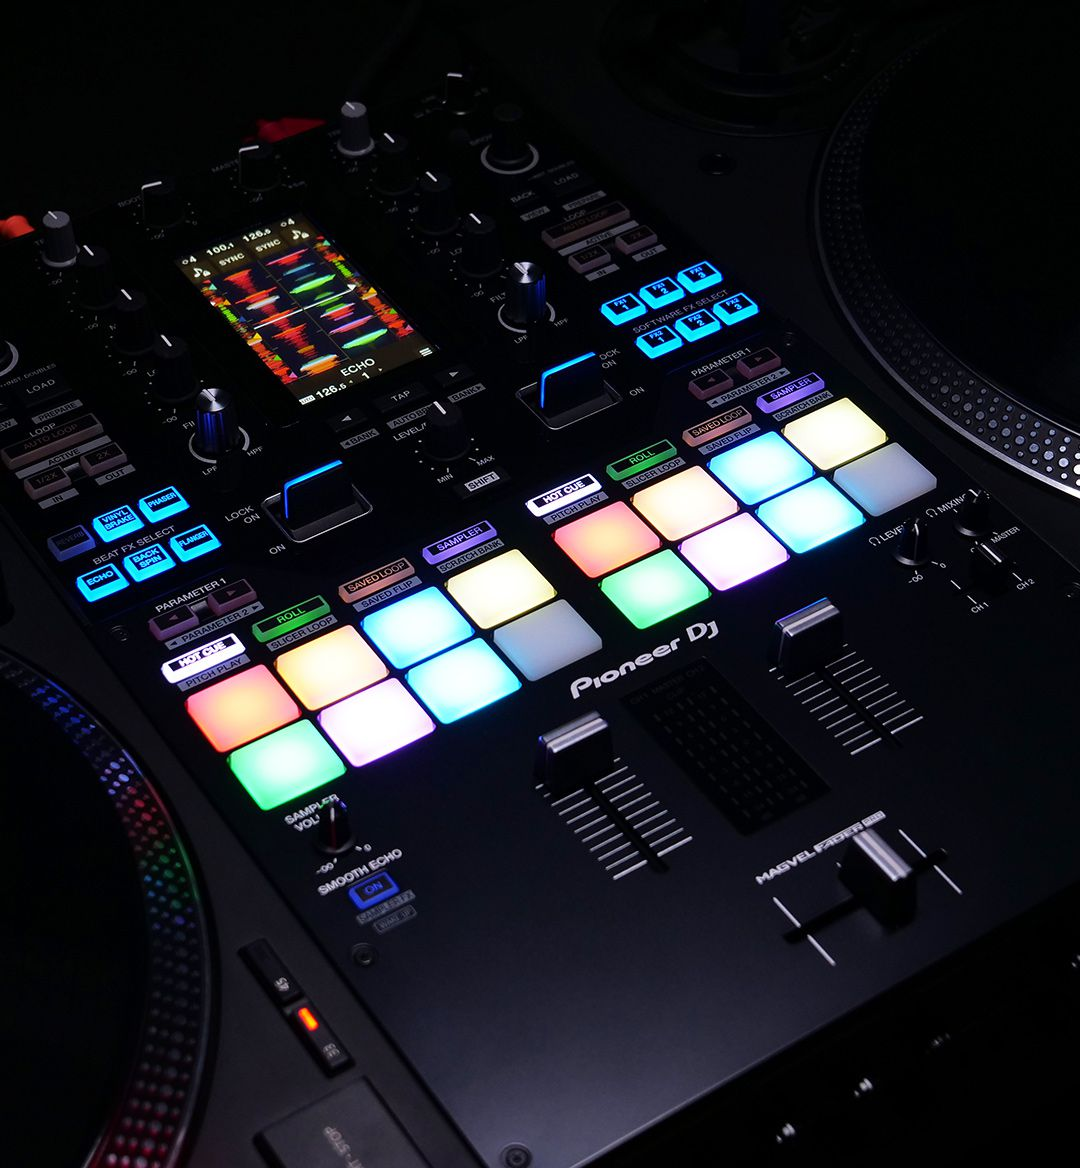 This is Pioneer DJ's DJM-S11: Scratch Bank, Four-deck controls & more